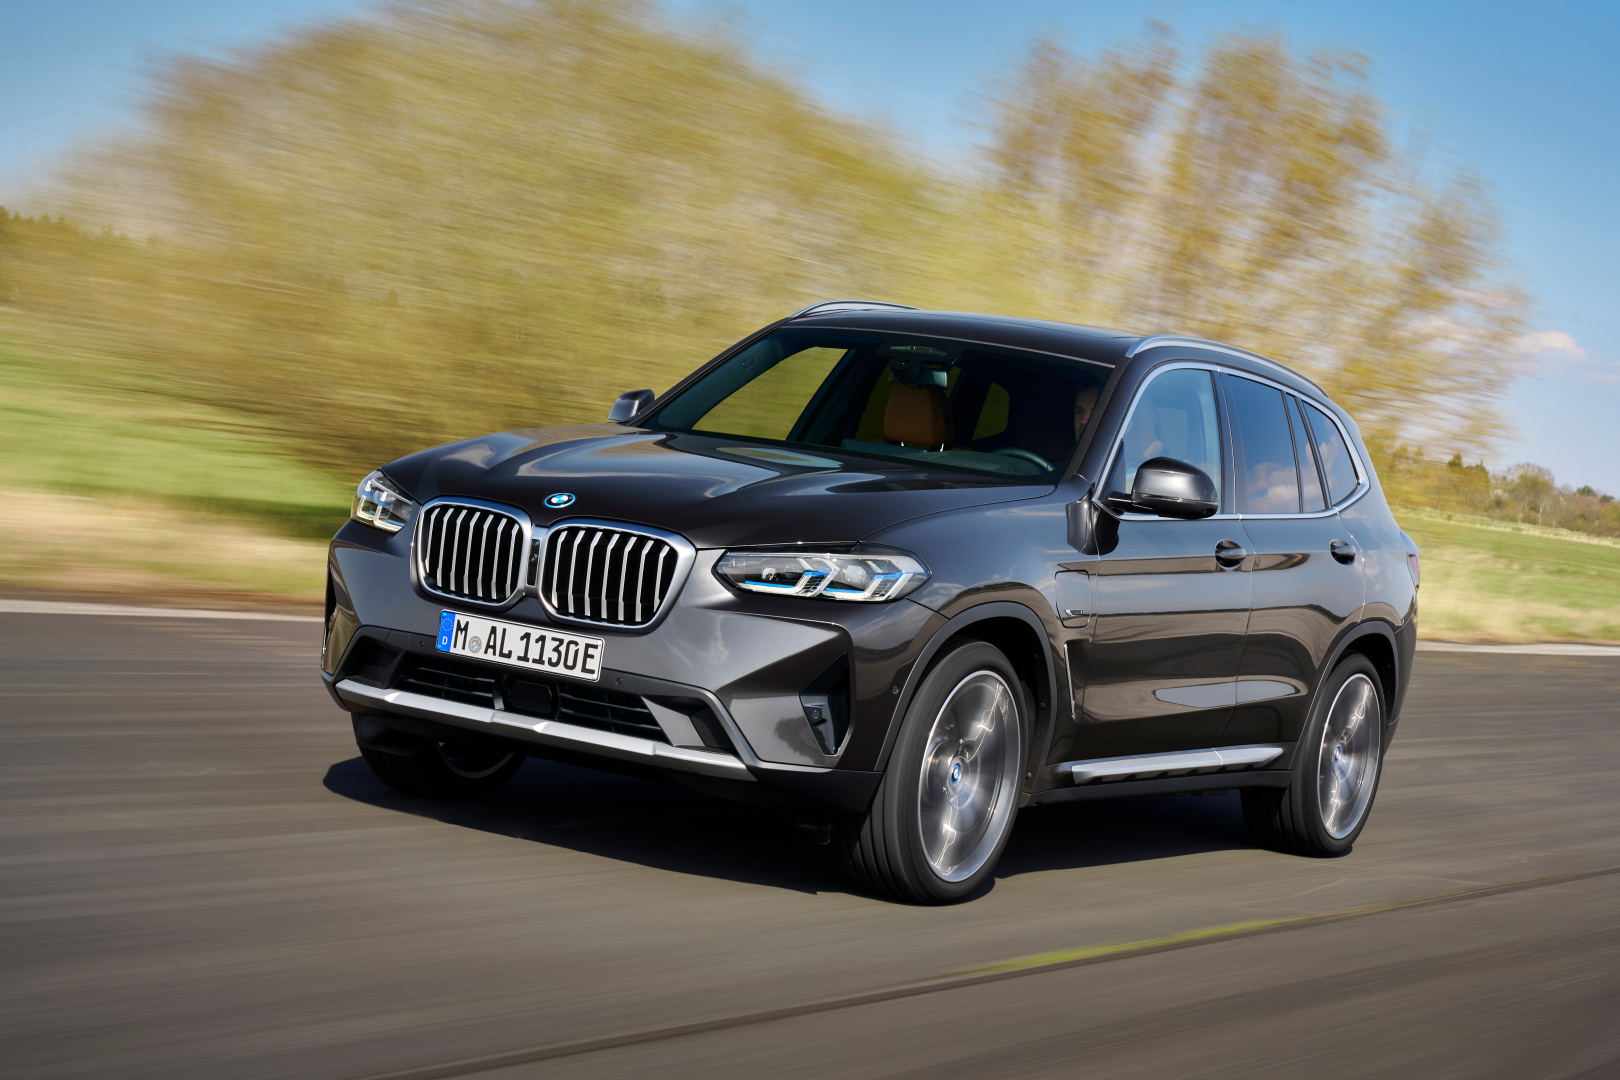 SMALL_P90424690_highRes_the-new-bmw-x3-xdriv